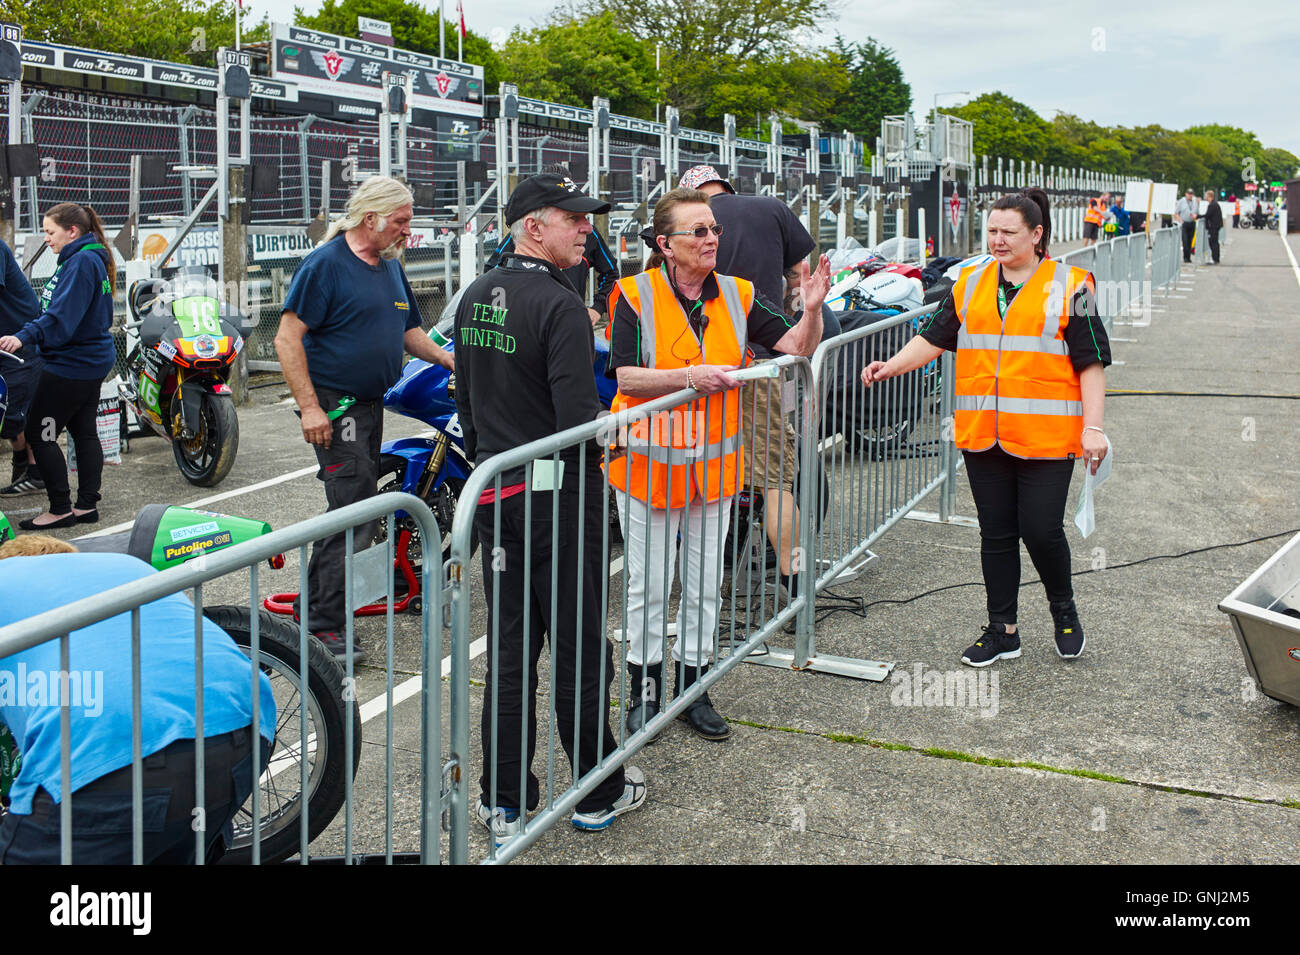 Officials positioning bikes before races at the Manx Festival of Motorcyling 2016 - Stock Image